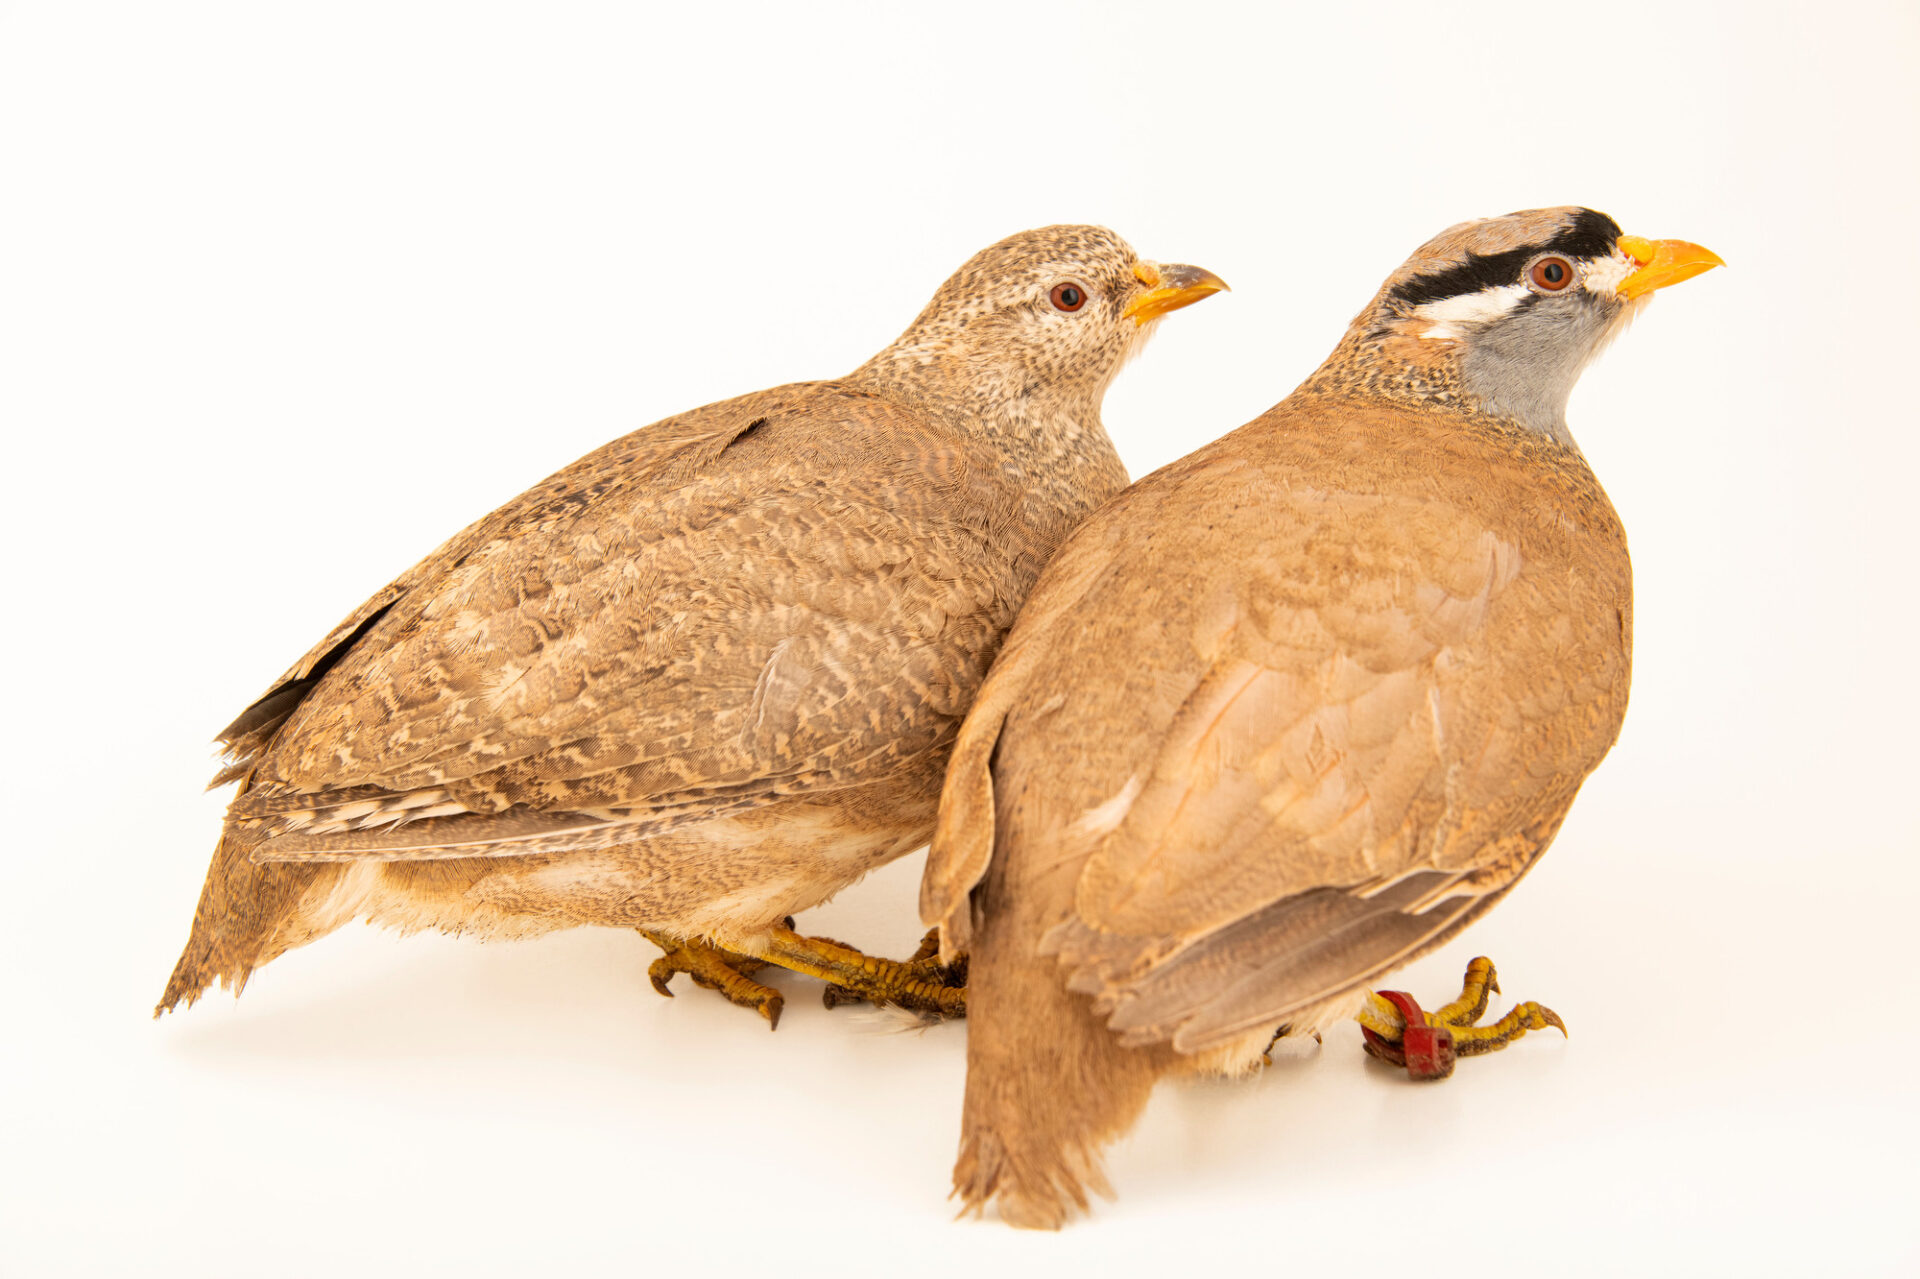 Photo: A pair of see-see partridges (Ammoperdix griseogularis) from a private collection.